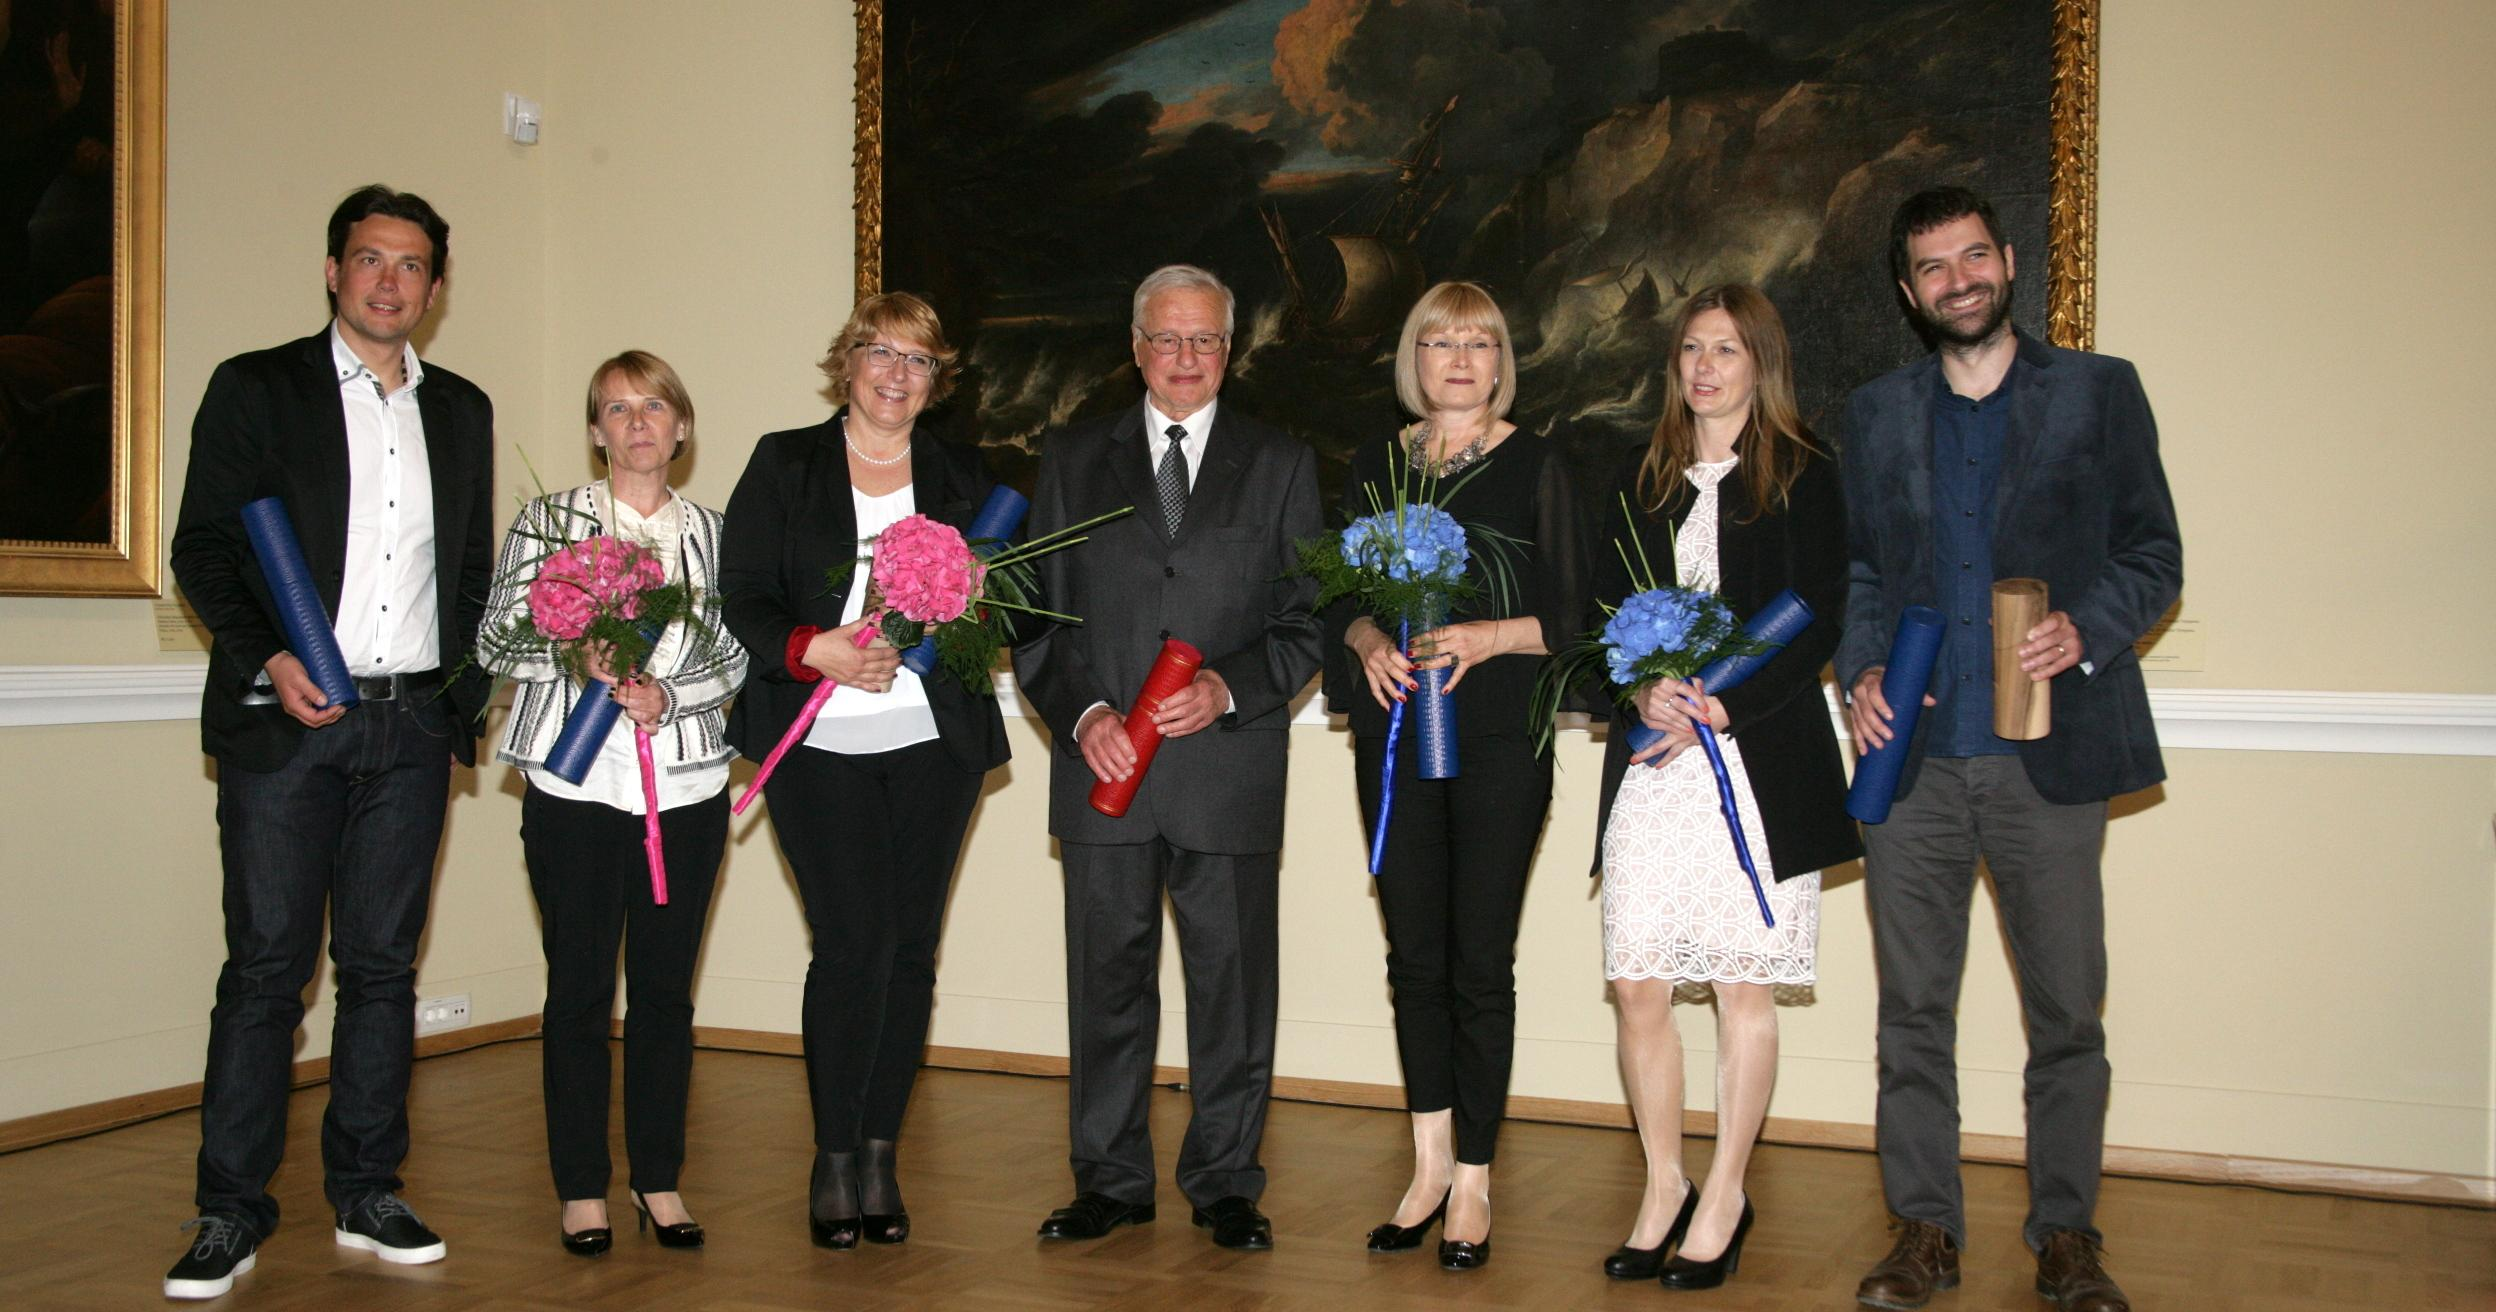 The Slovenian Conservation Society presented the Stele Award and Commendations